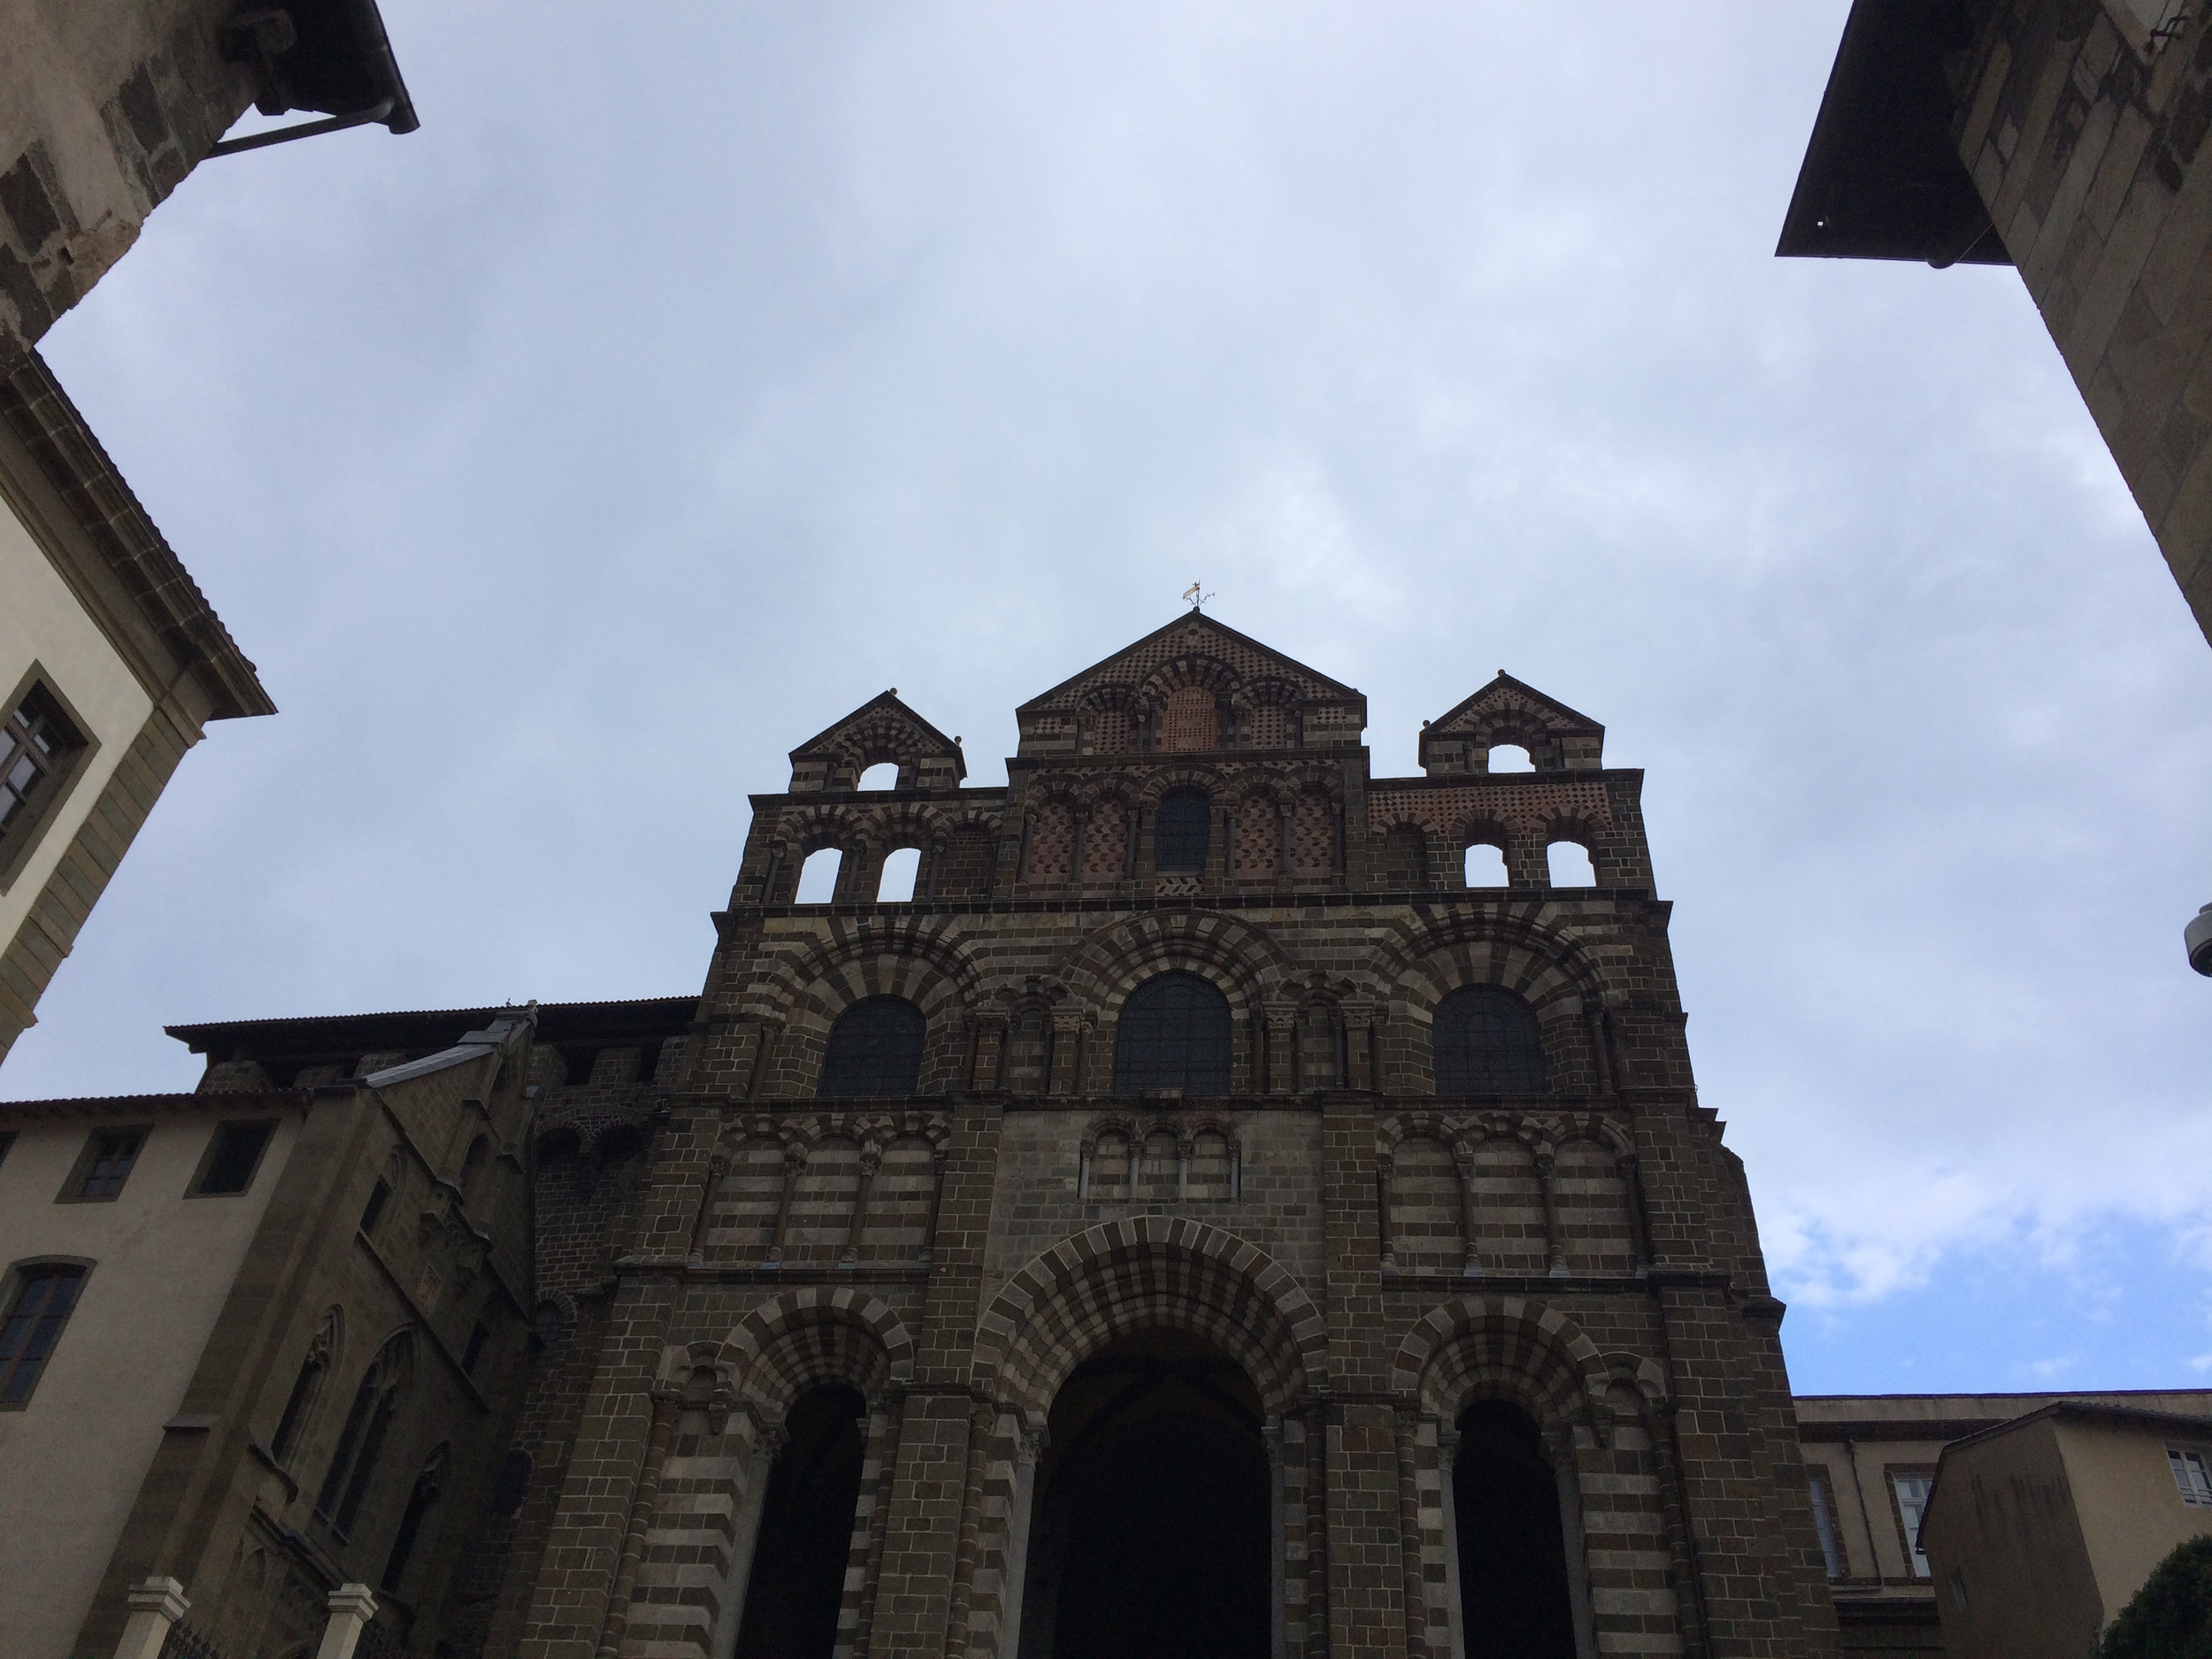 This cathedral took over 200 years to build